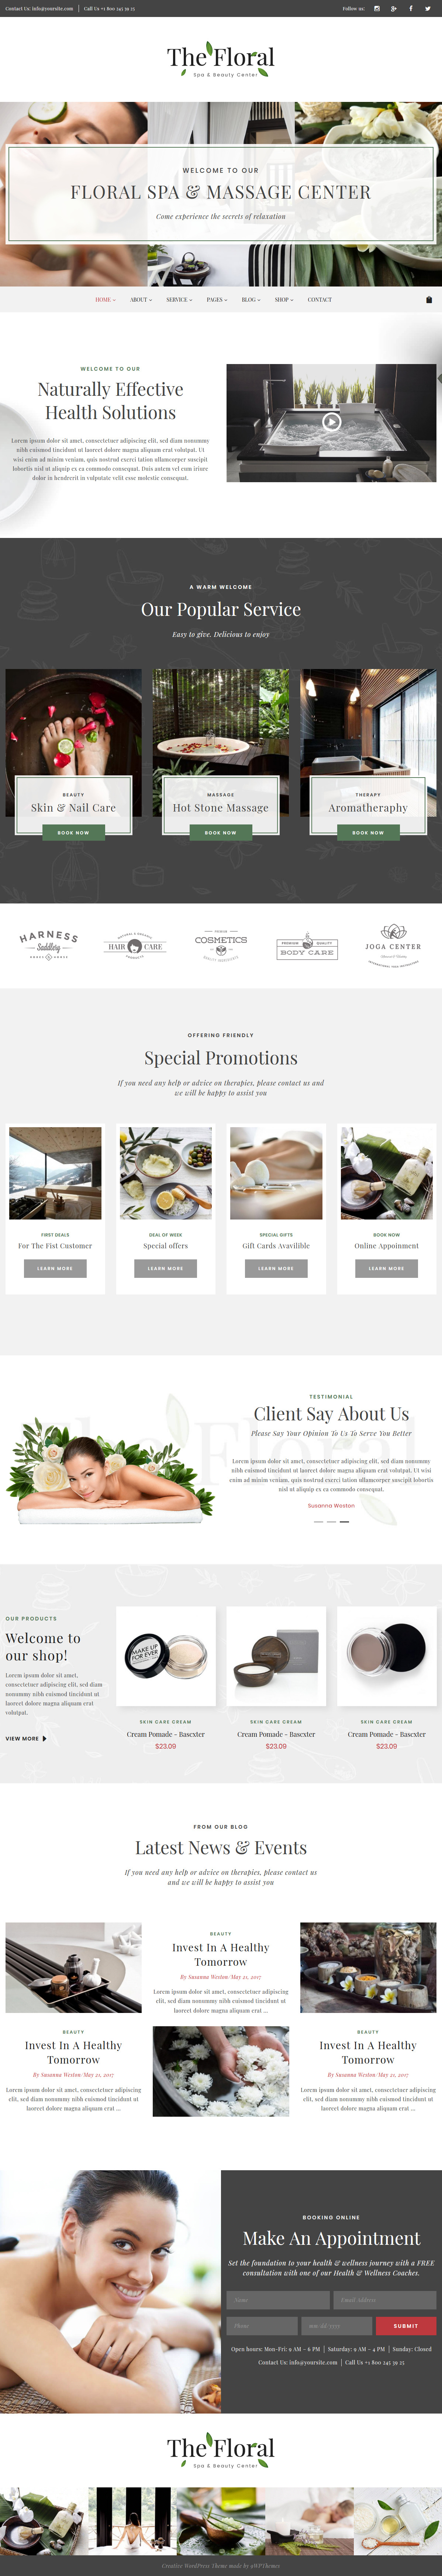 Floral - Best Premium Spa and Beauty WordPress Theme